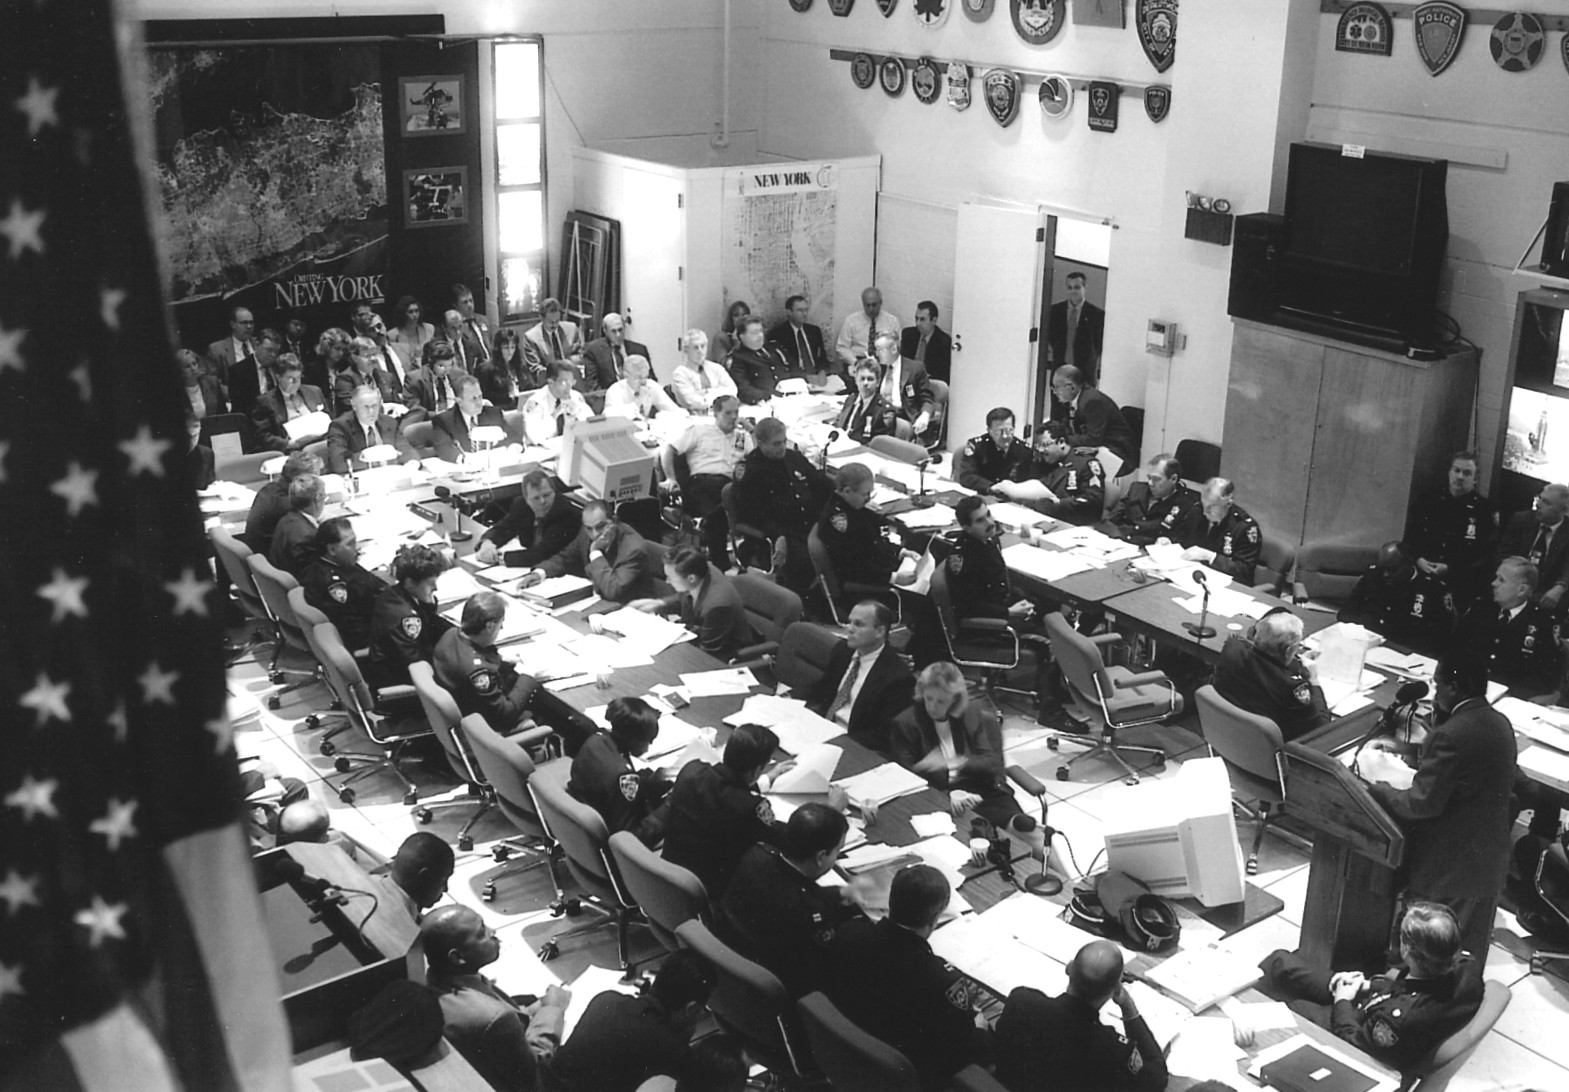 An early departmental CompStat report-back at 1 Police Plaza. Photo courtesy of Harvard Kennedy School, Ash Center for Democratic Governance and Innovation